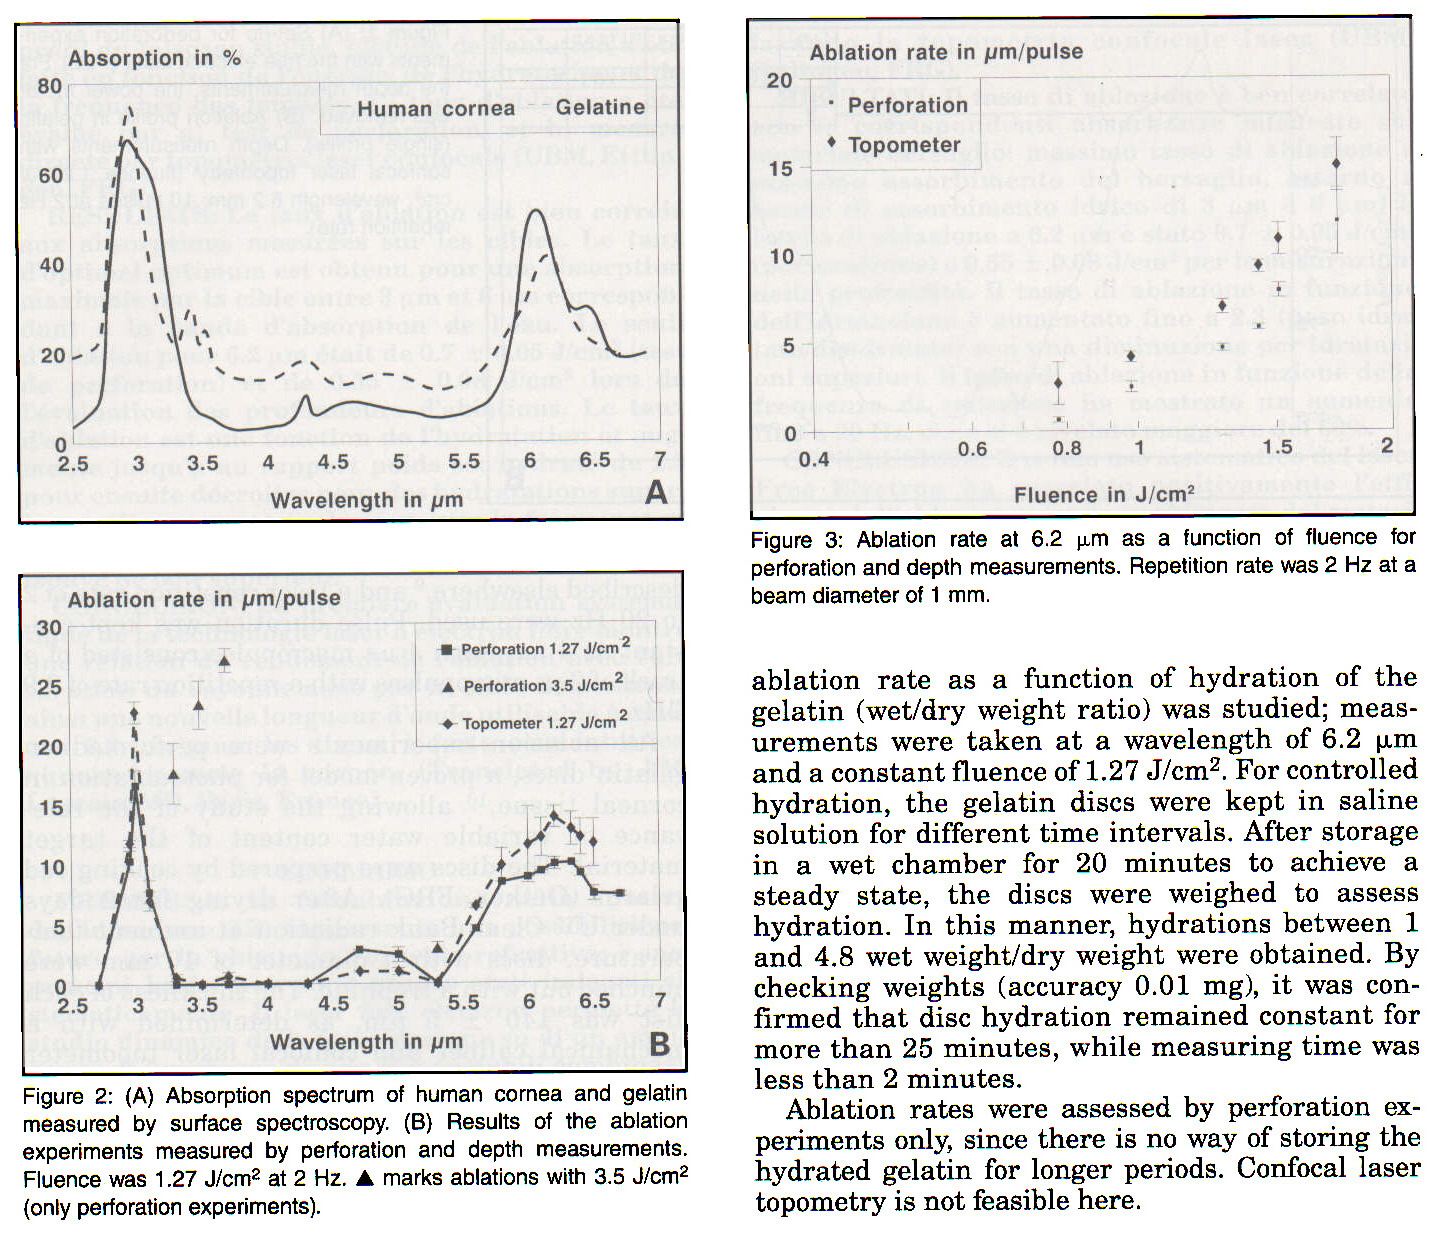 Figure 2: (A) Absorption spectrum of human cornea and gelatin measured by surface spectroscopy. (B) Results of the ablation experiments measured by perforation and depth measurements. Fluence was 1.27 J/cmp 2 at 2 Hz. * marks ablations with 3.5 J/cmp 2 (only perforation experiments).Figure 3: Ablation rate at 6.2 µm as a function of fiuence for perforation and depth measurements. Repetition rate was 2 Hz at a beam diameter of 1 mm.